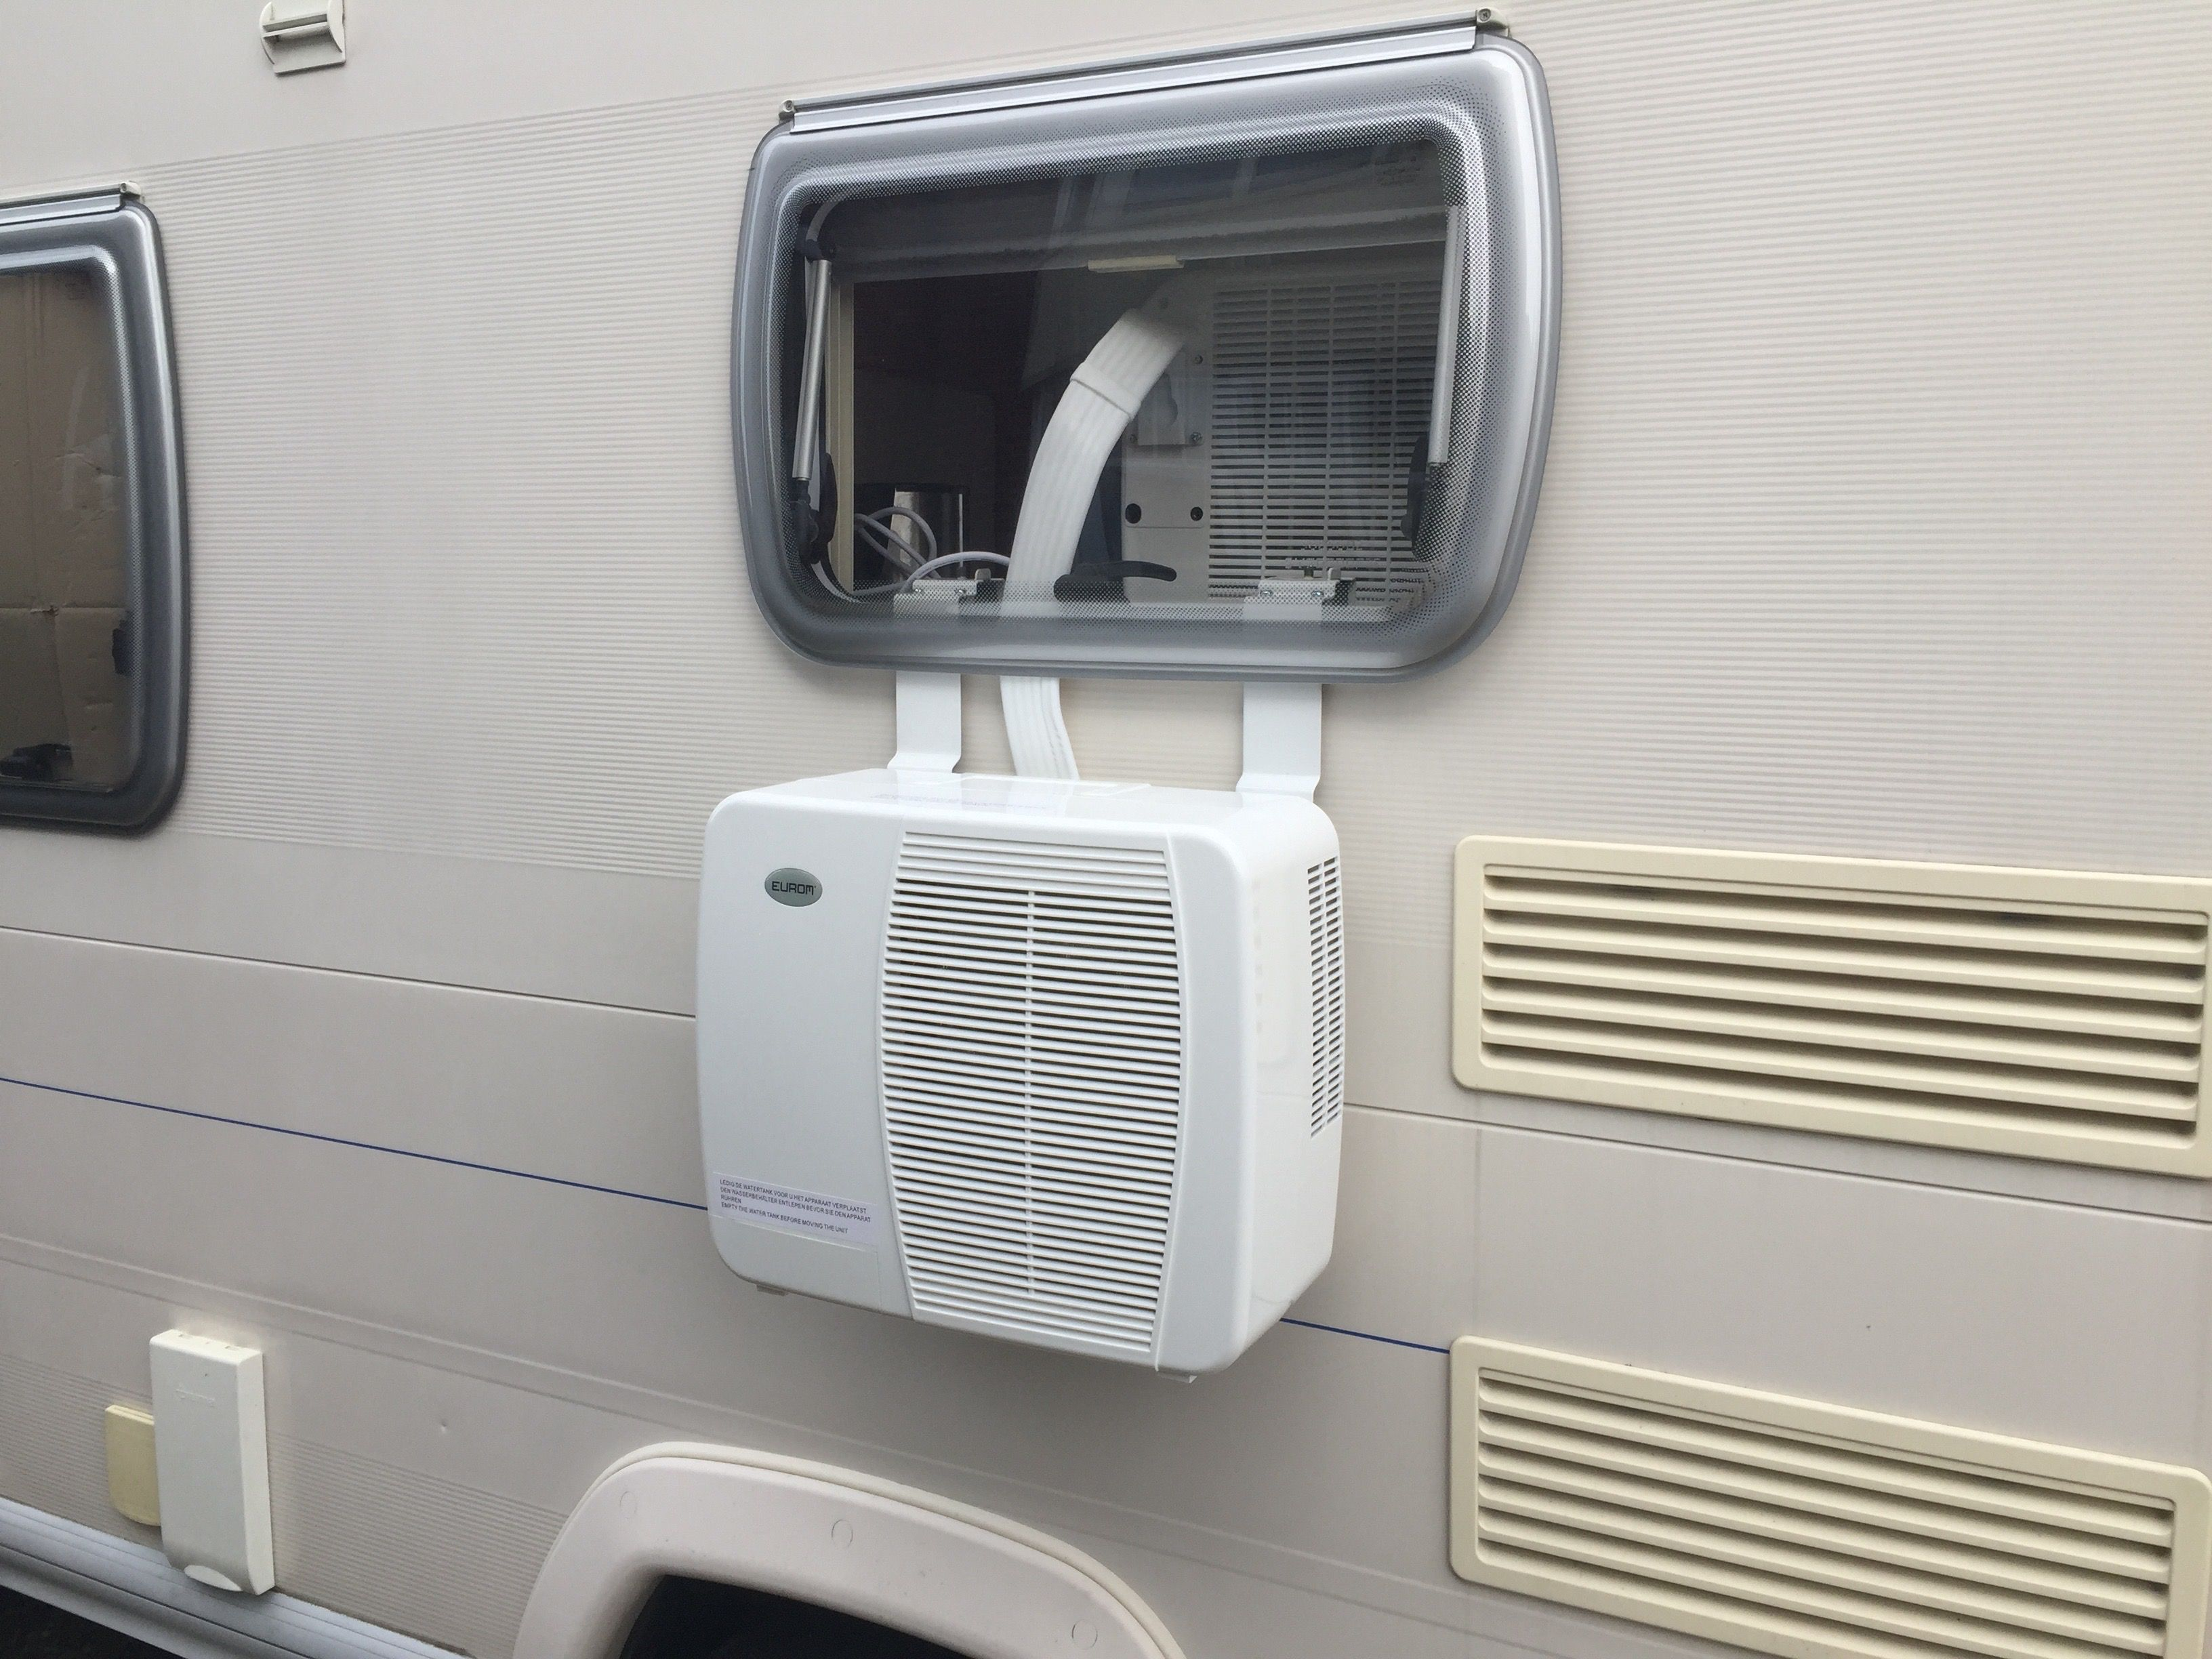 Cool My Camper air con unit shown installed on a window